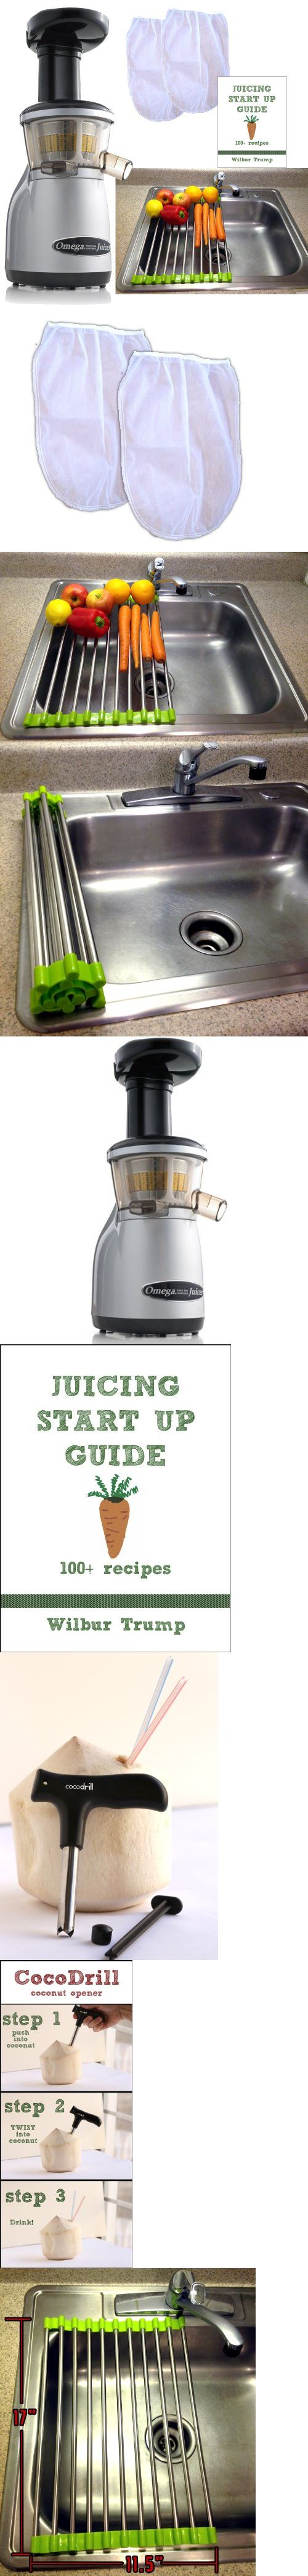 Omega VRT350 Juicer + Folding Drain Rack + 2 Nut Milks Bags + Juicing Book,Recipes + CocoDrill Coconut Tool Heavy Duty Vertical Single Auger Low Speed Juicer, The Omega Model VRT350 VERT Juicer is a revolutionary product that features the high efficiency of a masticating style juicer in a vertical design. The VERT is designed to be compact, contemporary and..., #Kitchen, #Masticating Juicers, $389.99